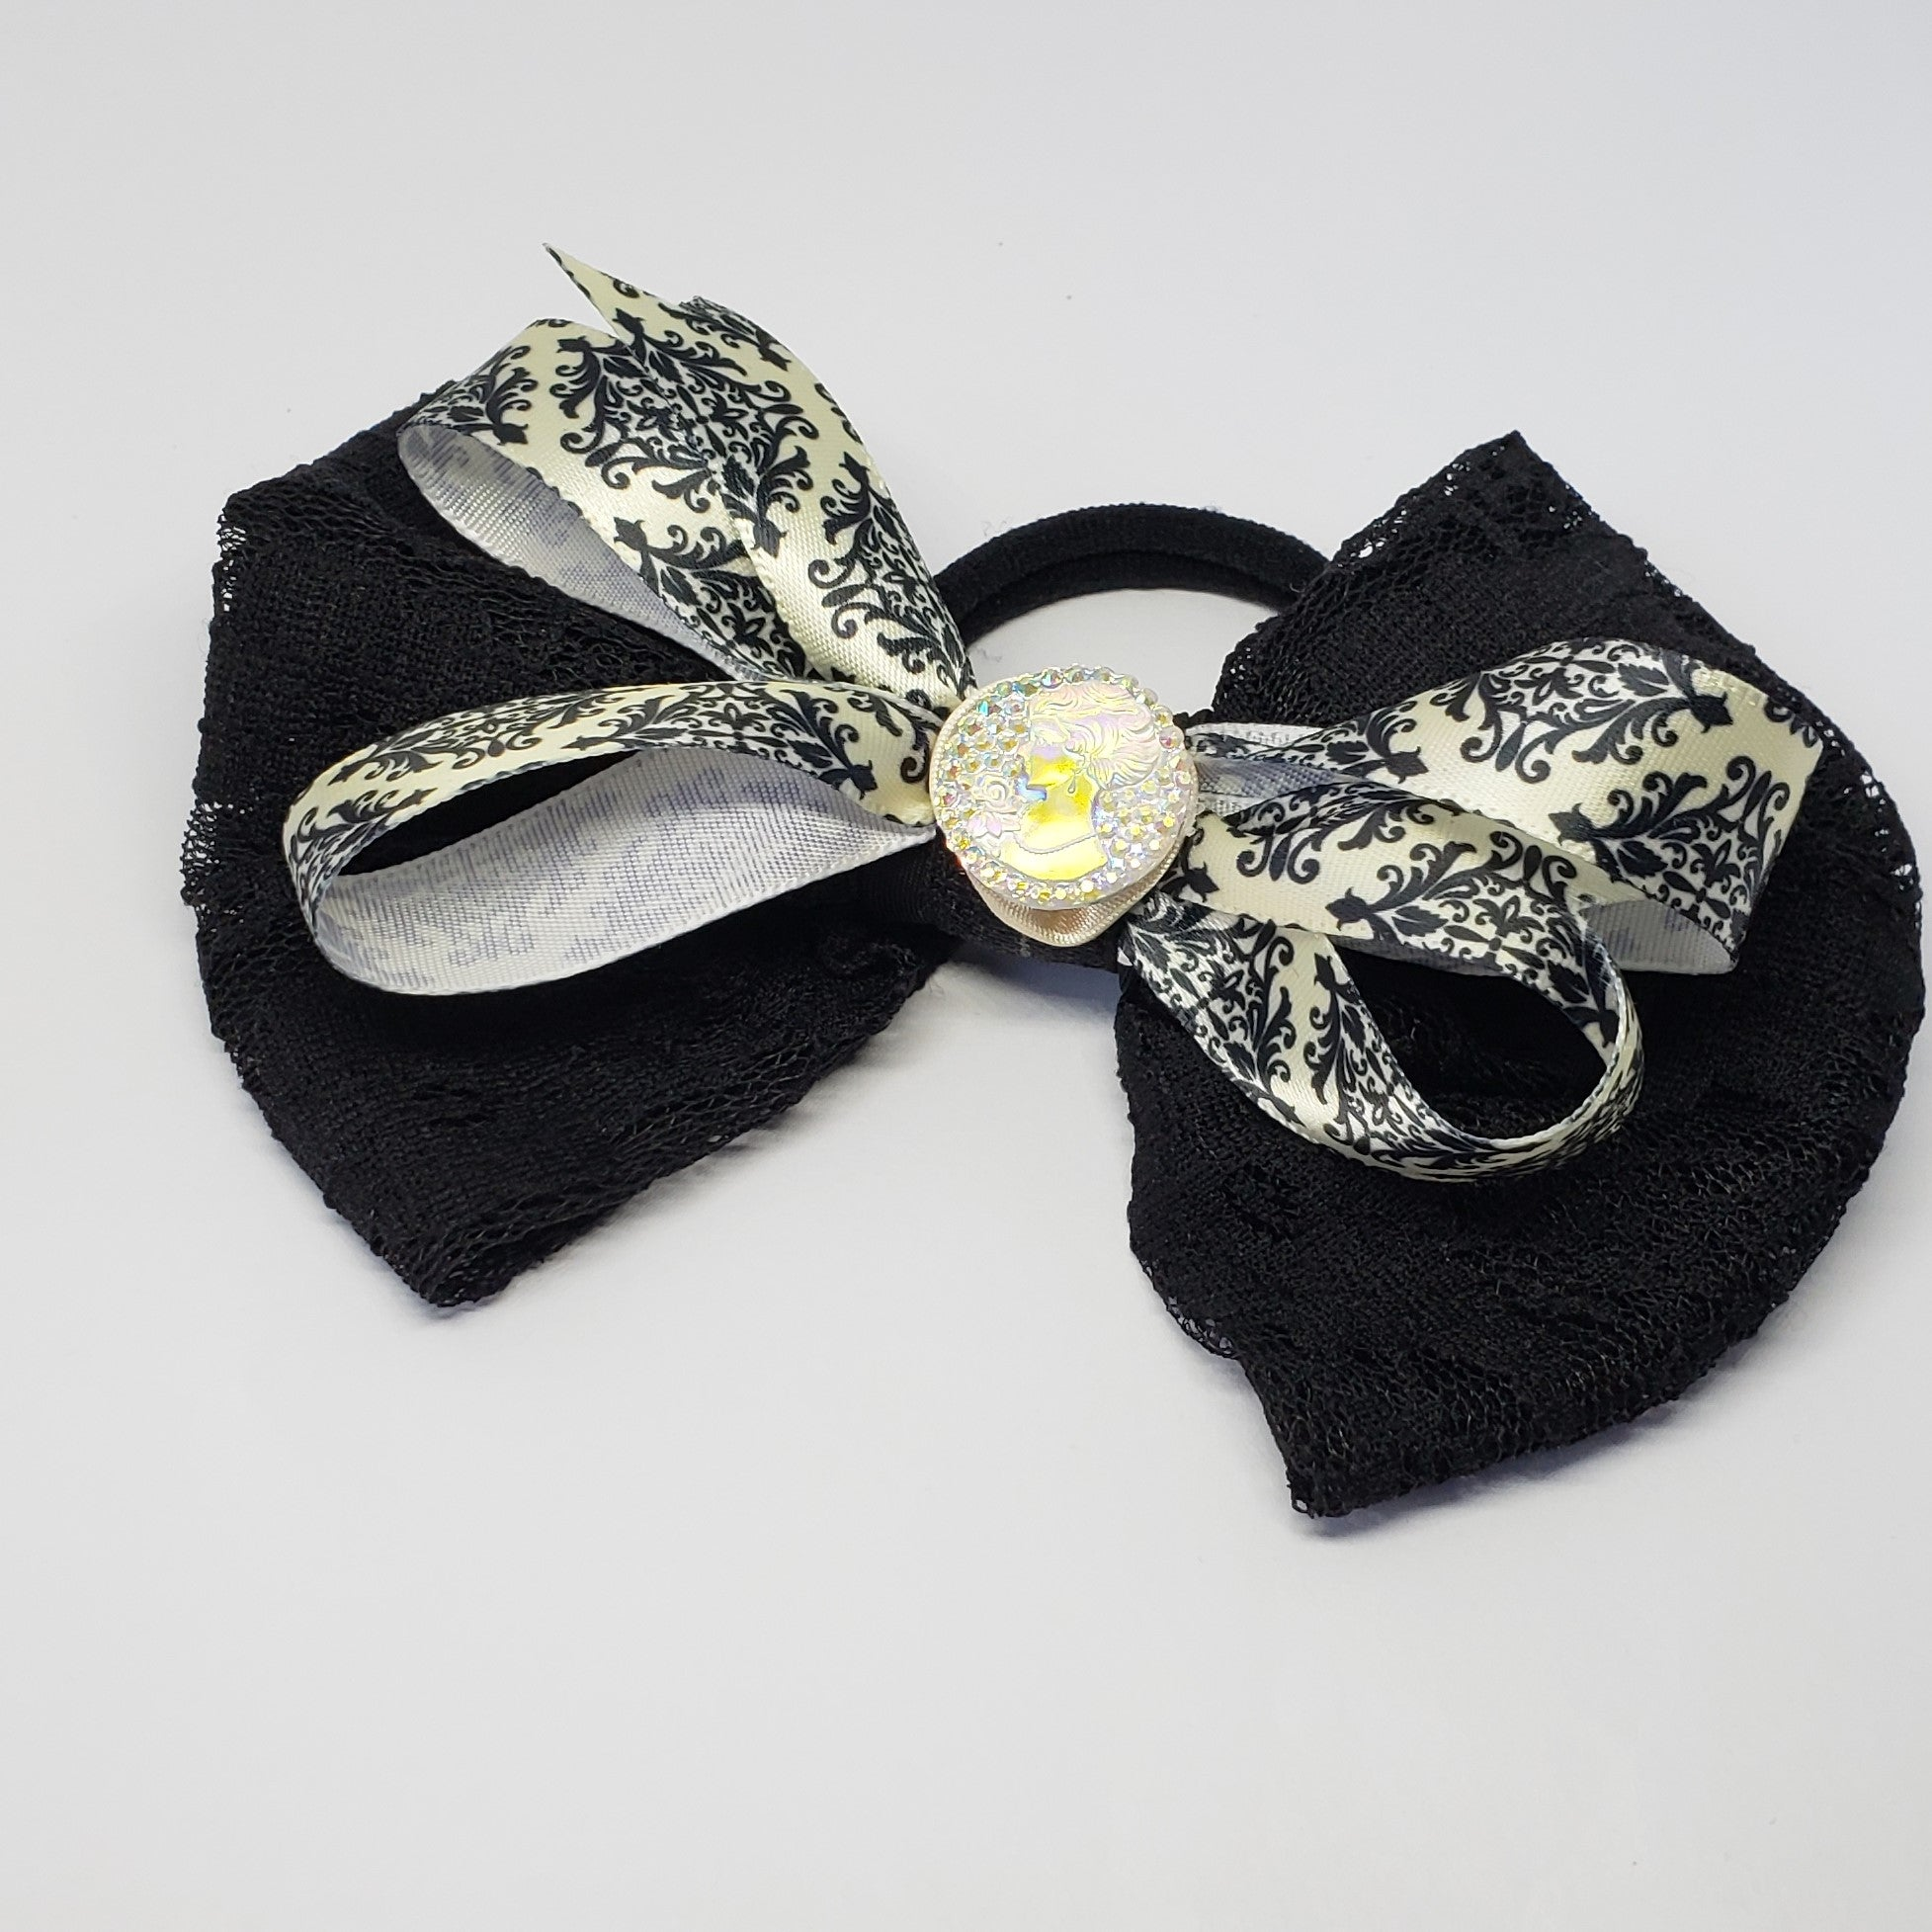 N-Zala Moonlight Stroll Black & Cream Lace Cameo Bow - Houzz of DVA Boutique